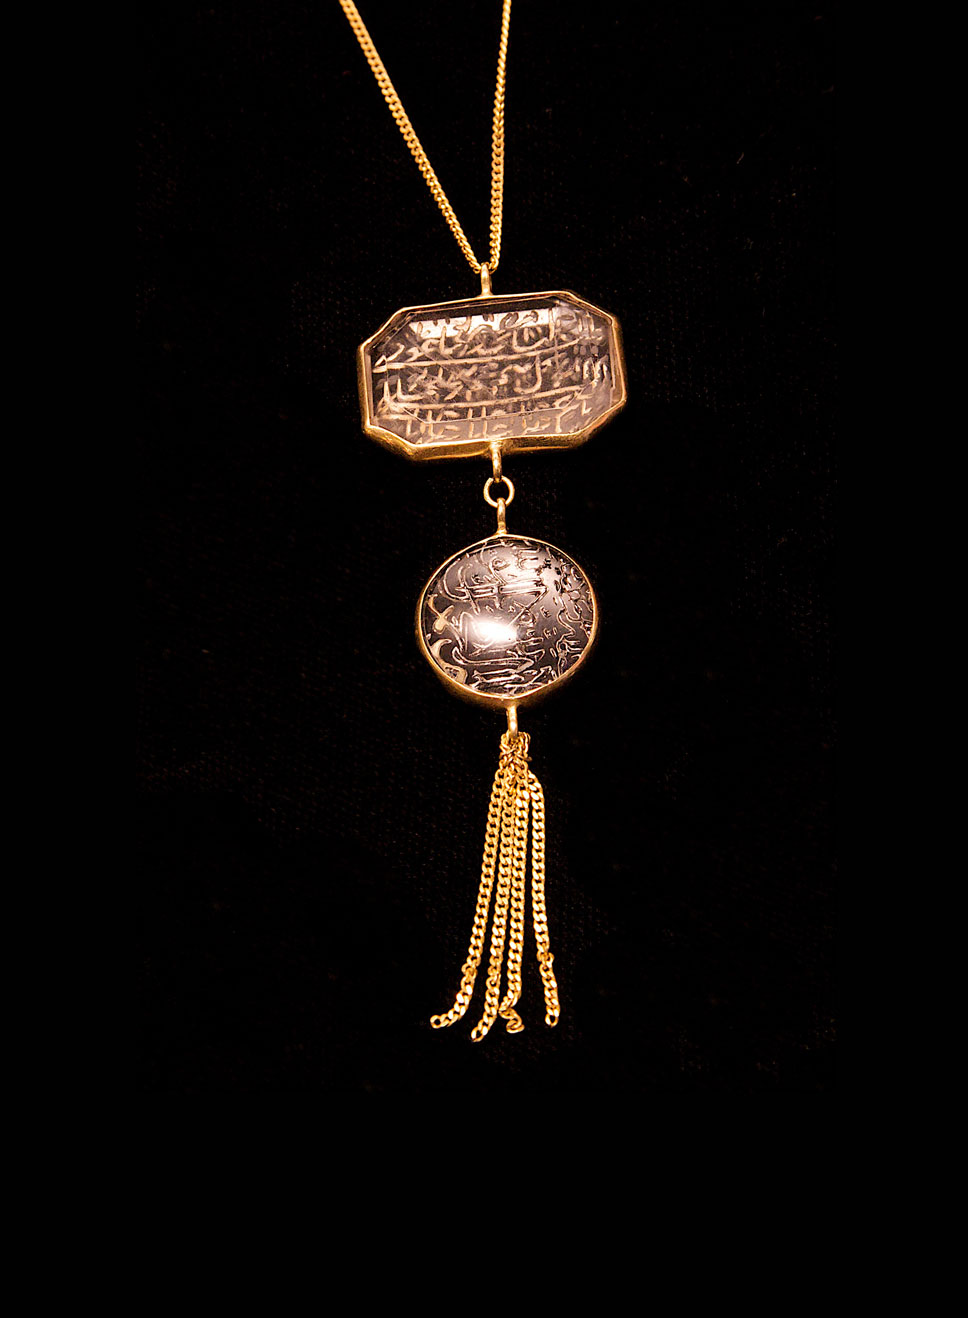 Antique Iranian prayer pendant. Crystal with a 22ct gold bezel and 18ct gold chain. Length of chain-93cm. Pendant height- 2cm. Width- 3cm.